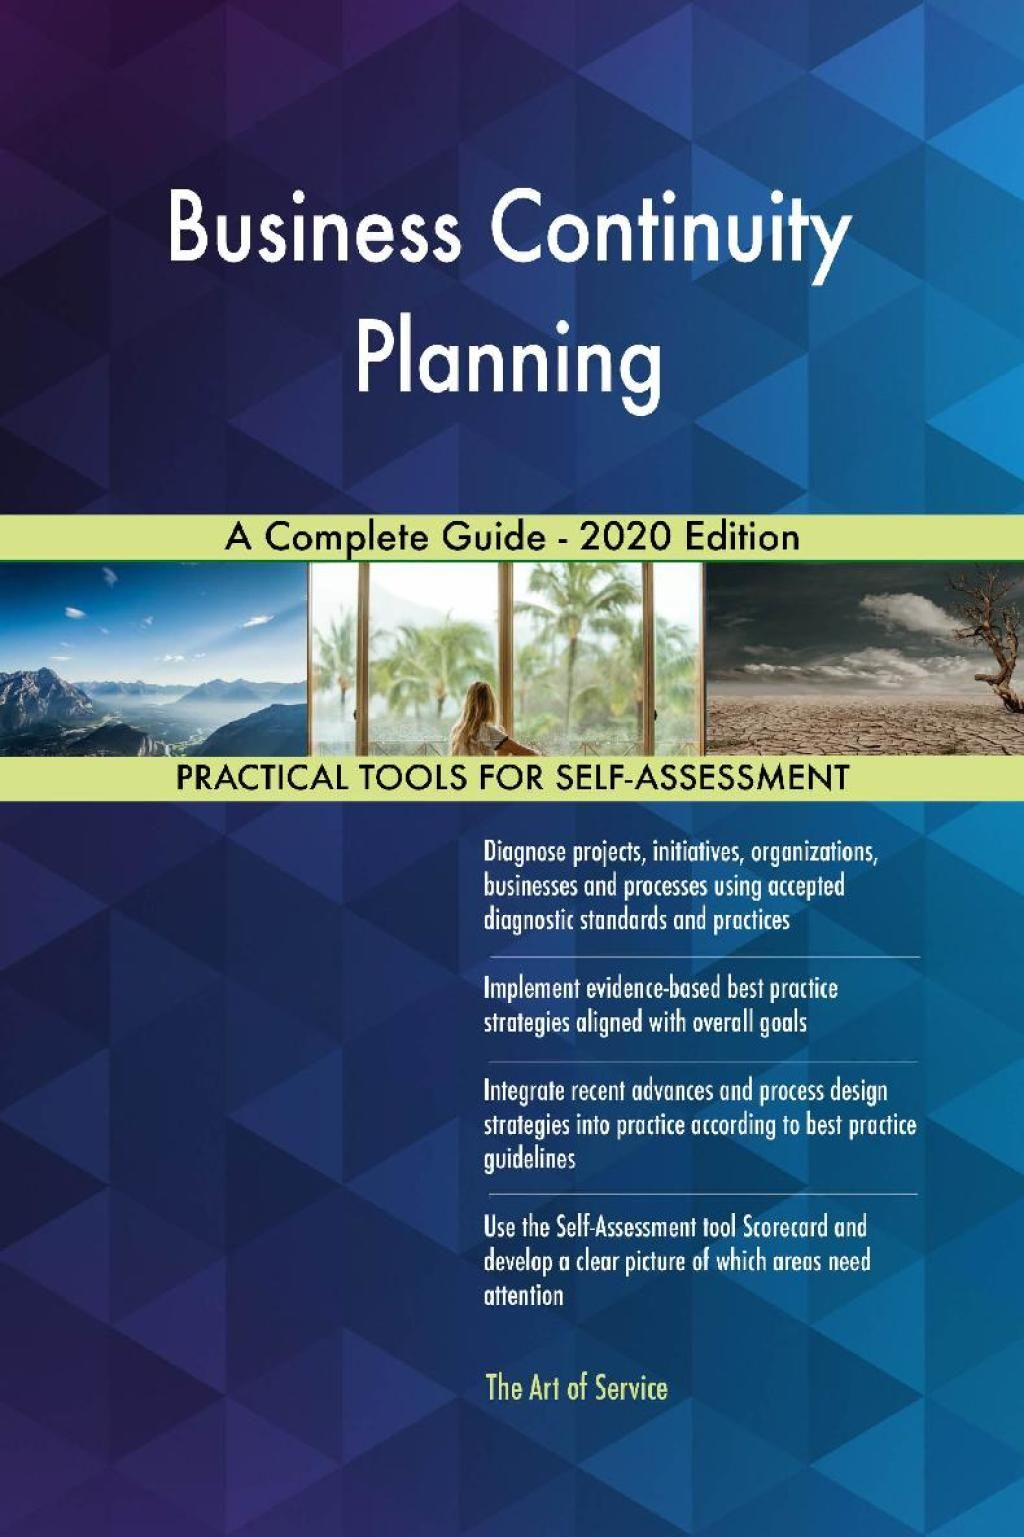 Business Continuity Planning A Complete Guide 2020